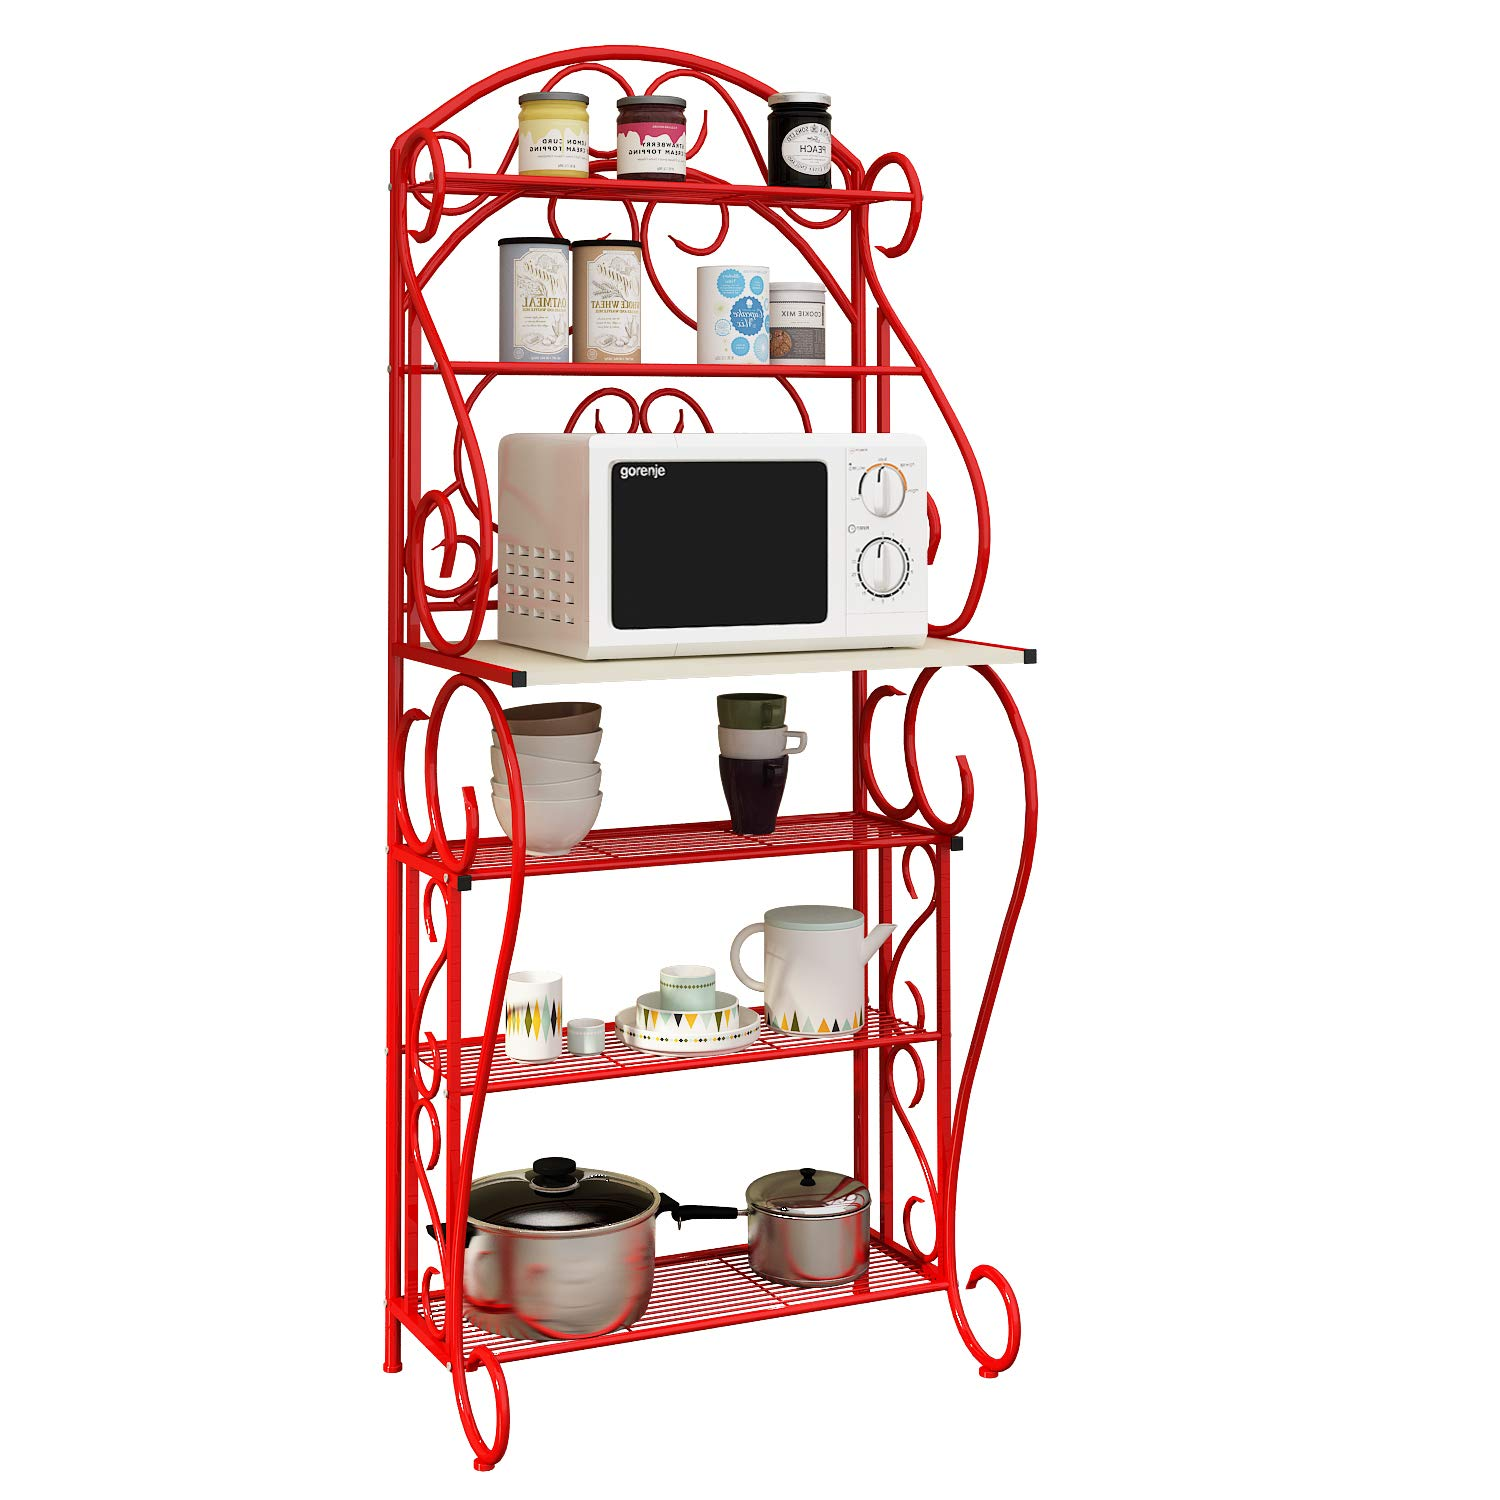 HOME BI 5-Tier Kitchen Bakers Rack Microwave Stand Kitchen Cart with Red Finish Shelves Spice Rack Organizer Workstation by HOME BI